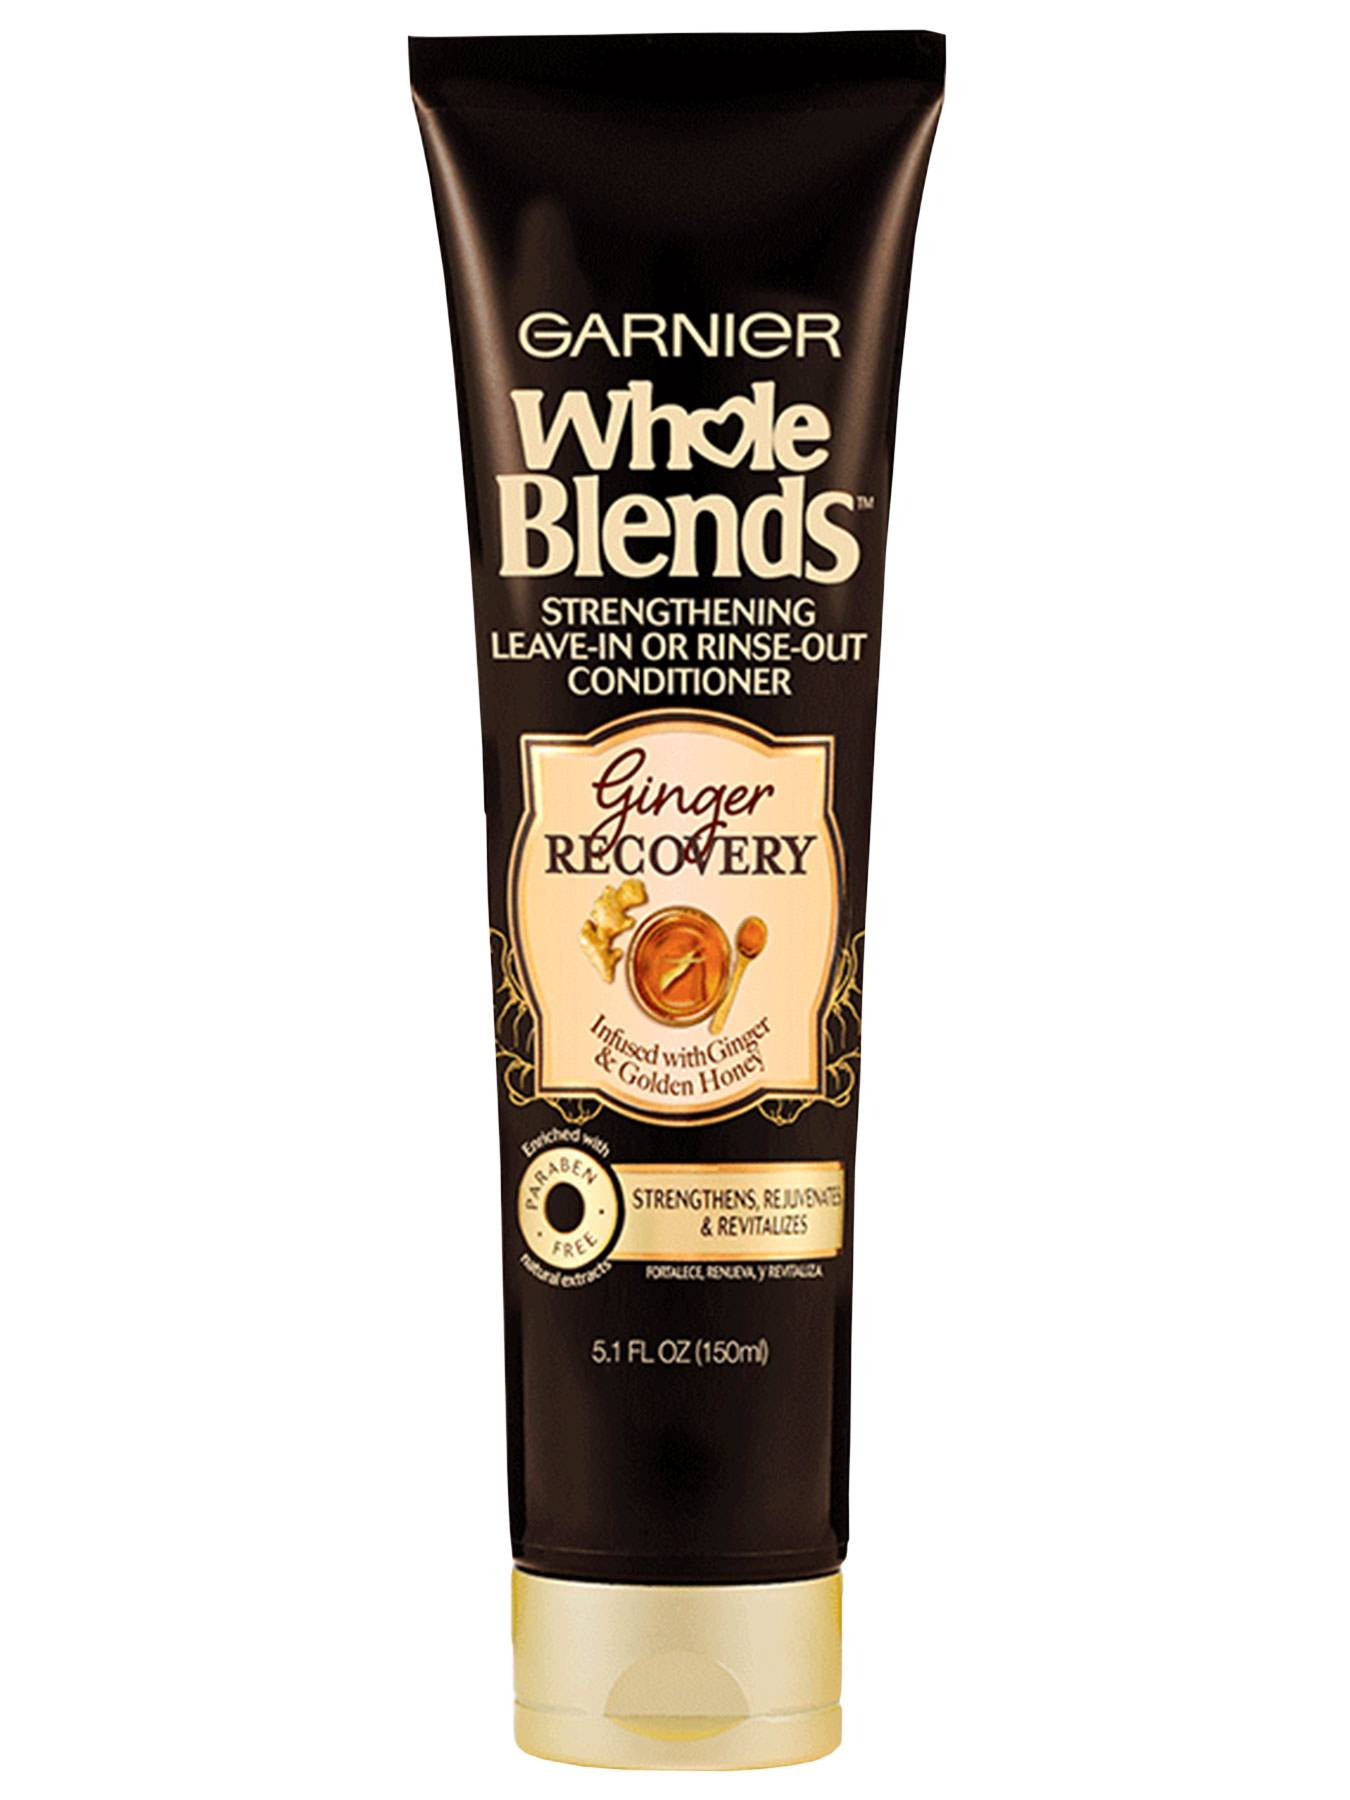 Whole Blends Ginger Recovery Hair Treatment Hair Care Garnier